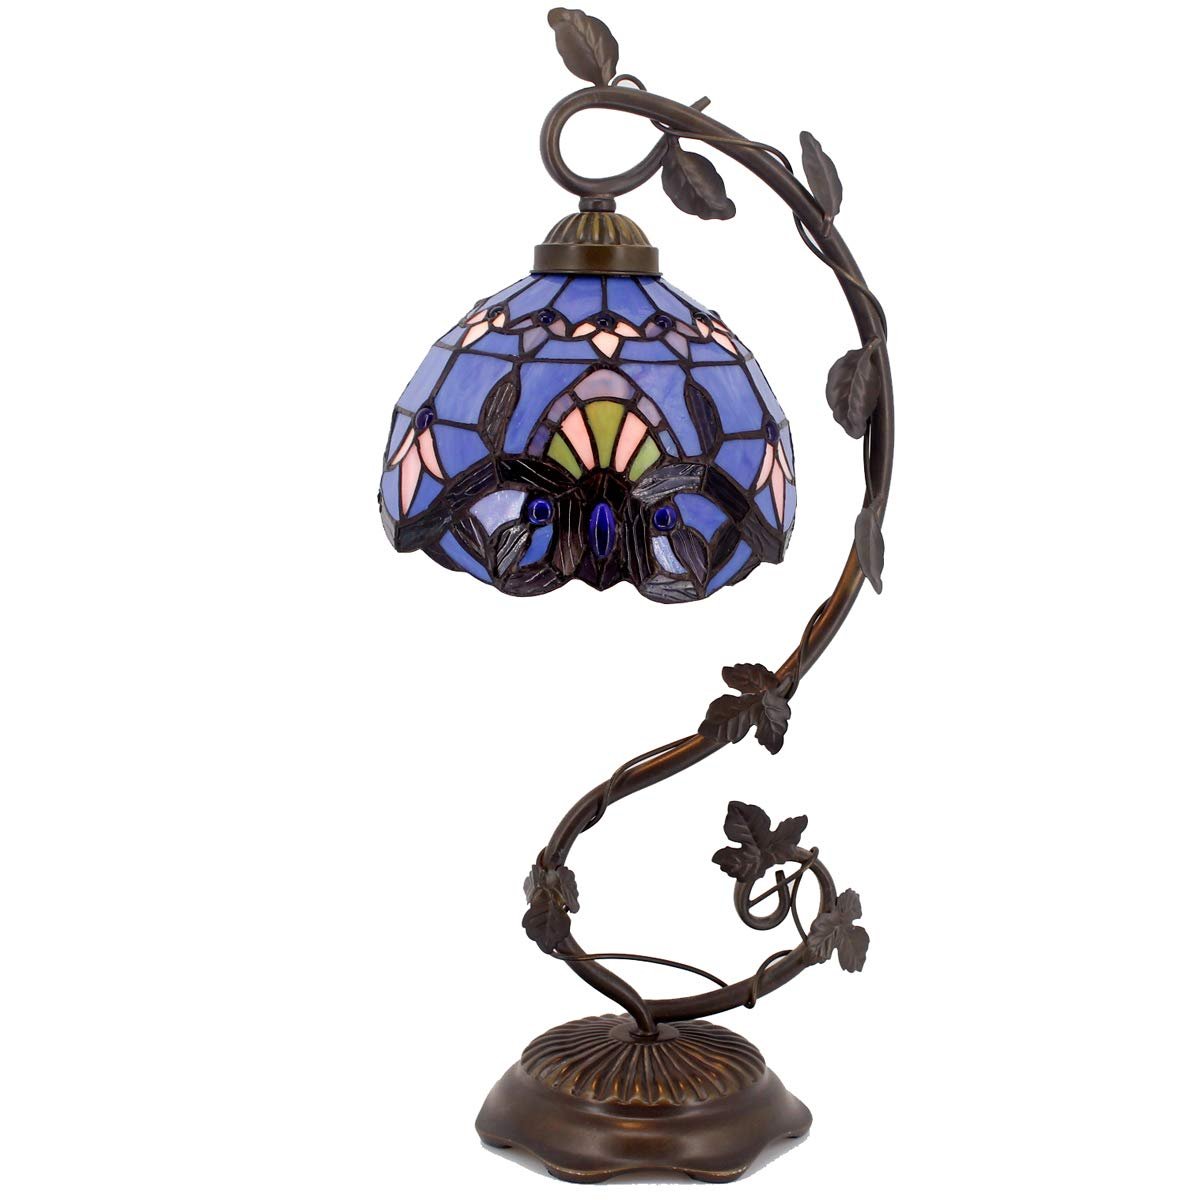 Tiffany Desk Lamp Lavender Stained Glass Table Light 08T28 S003B S003C